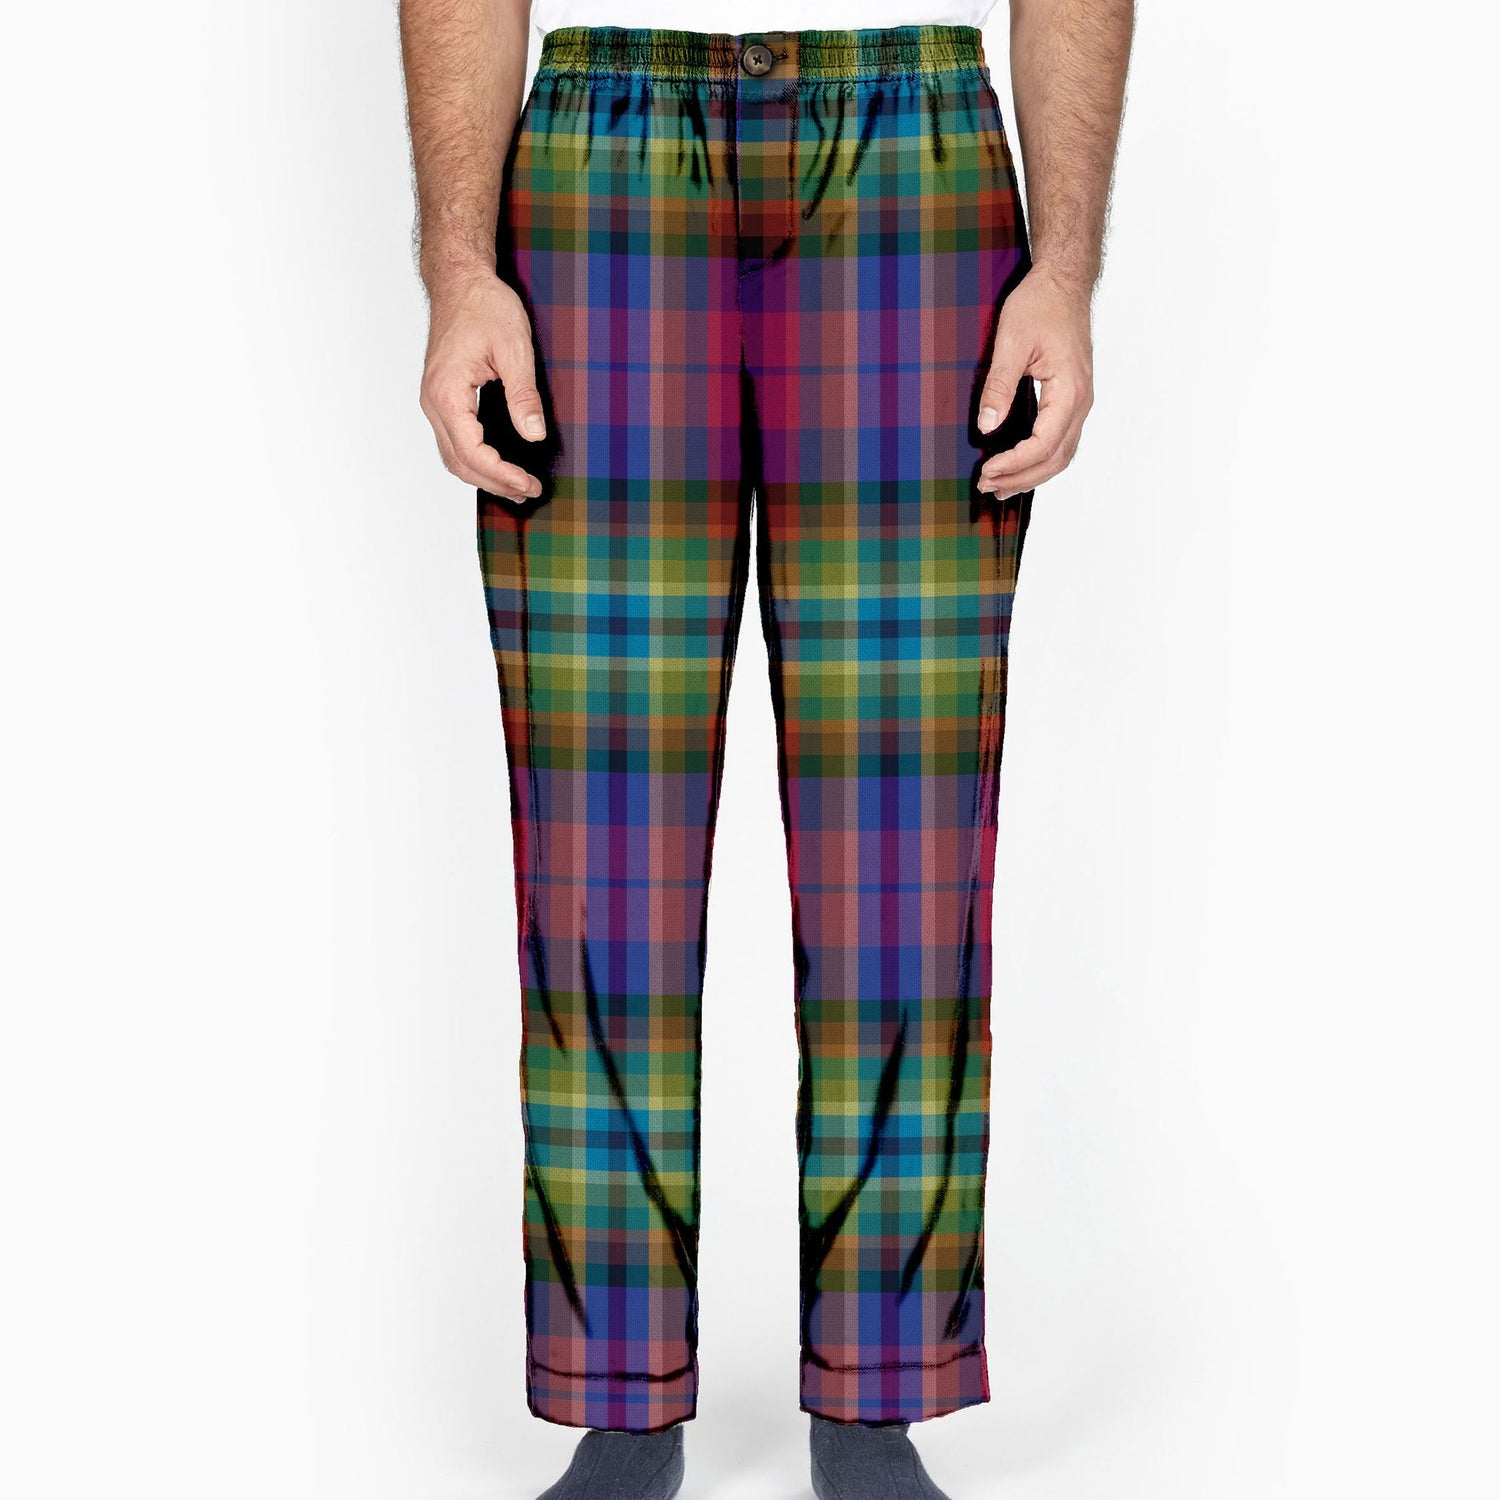 The Technique Plaid Lounge Pant